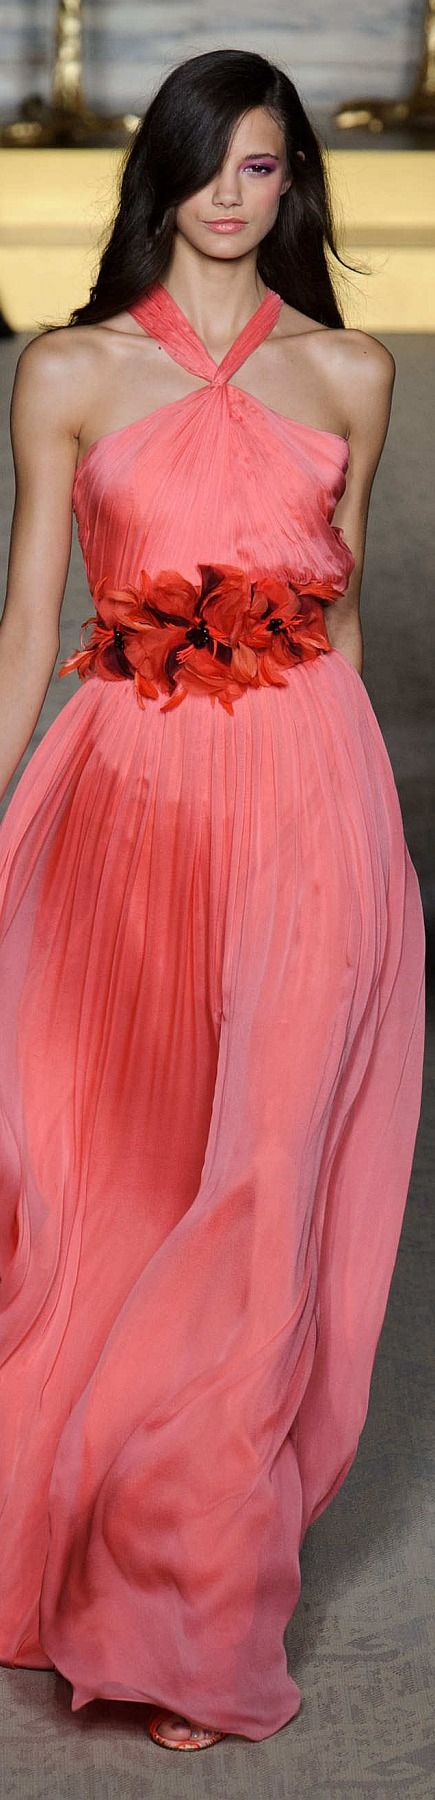 Matthew Williamson Collection ~ Halter Top Gown, Rose, Spring 2015